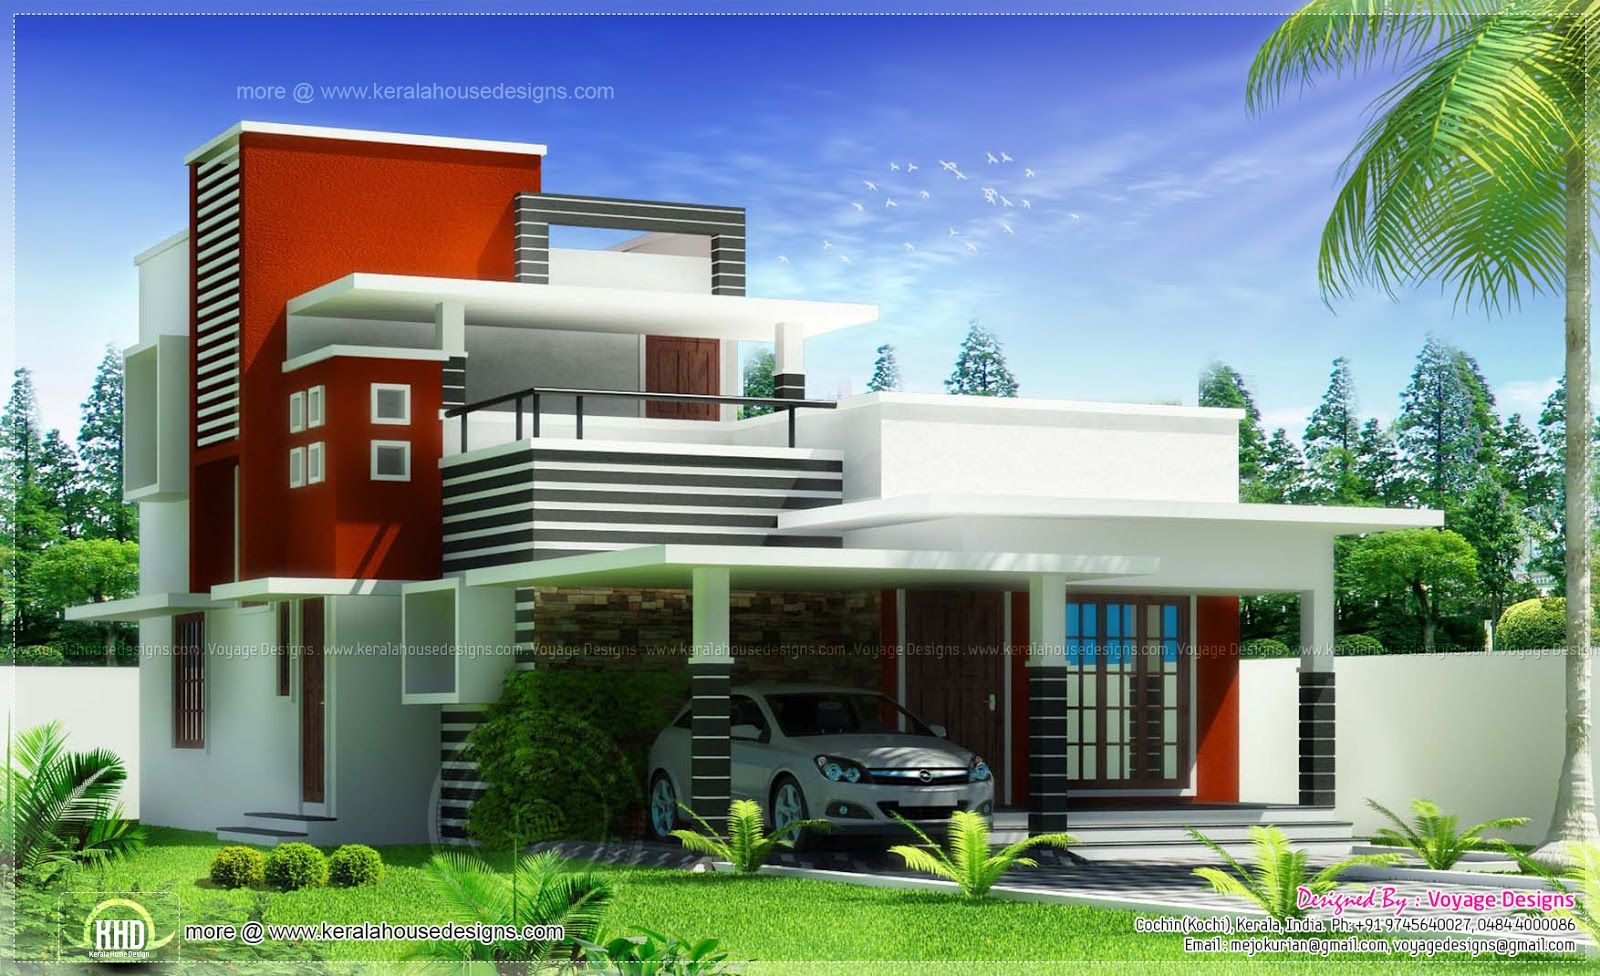 Kerala house designs architecture pinterest kerala for Modern house designs 2017